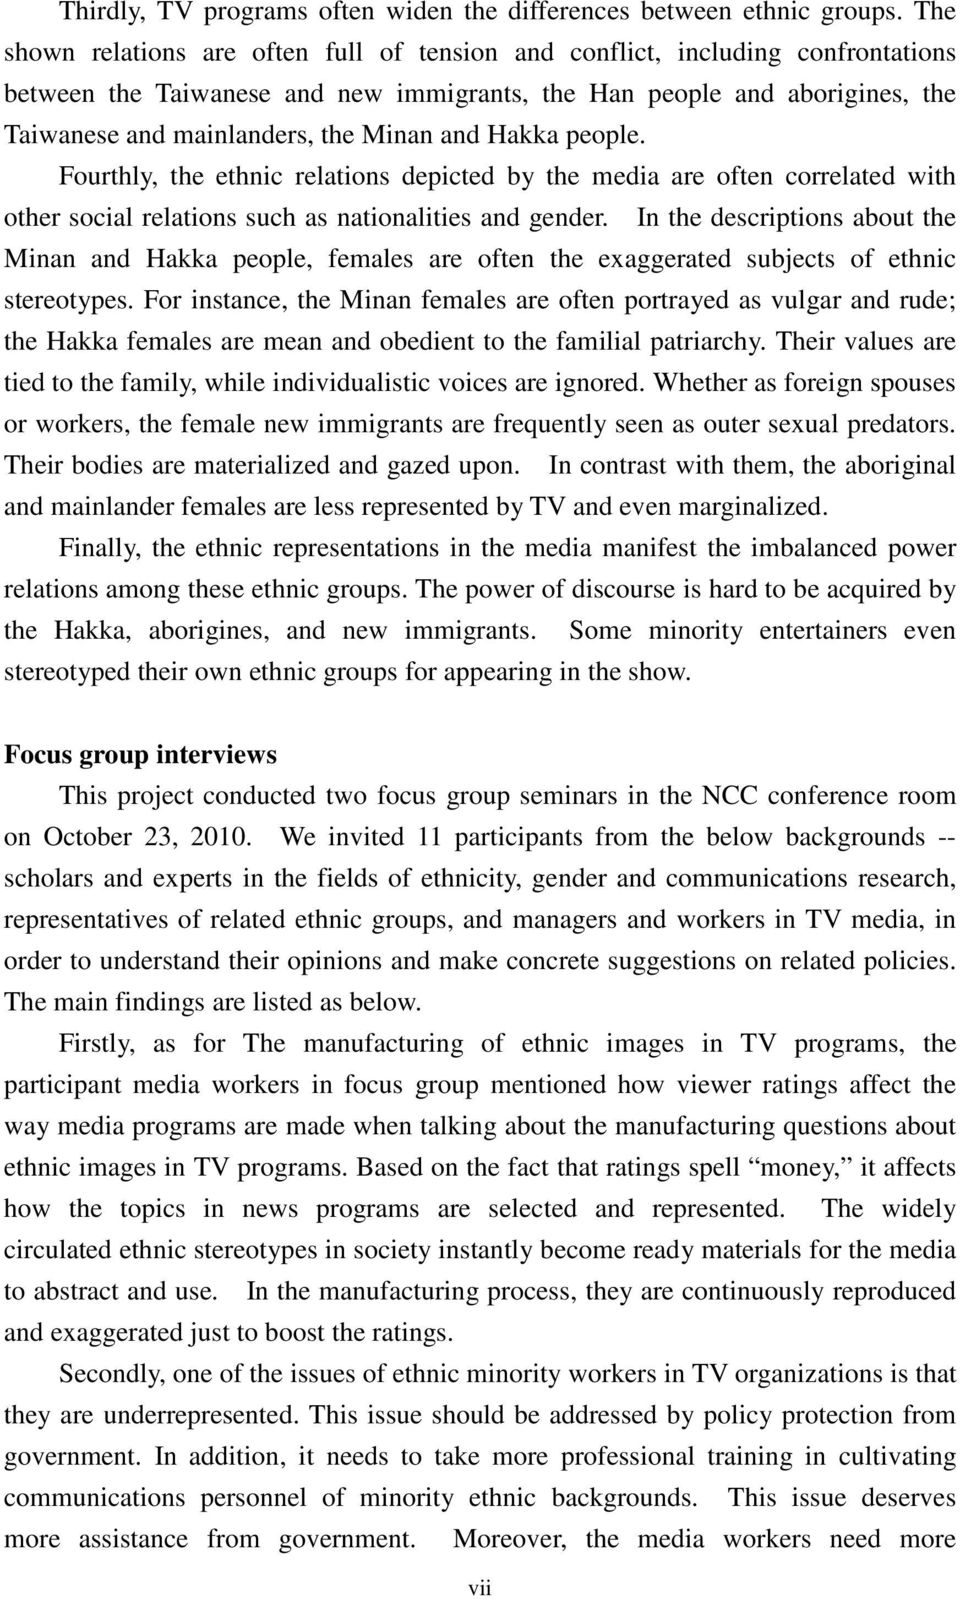 and Hakka people. Fourthly, the ethnic relations depicted by the media are often correlated with other social relations such as nationalities and gender.